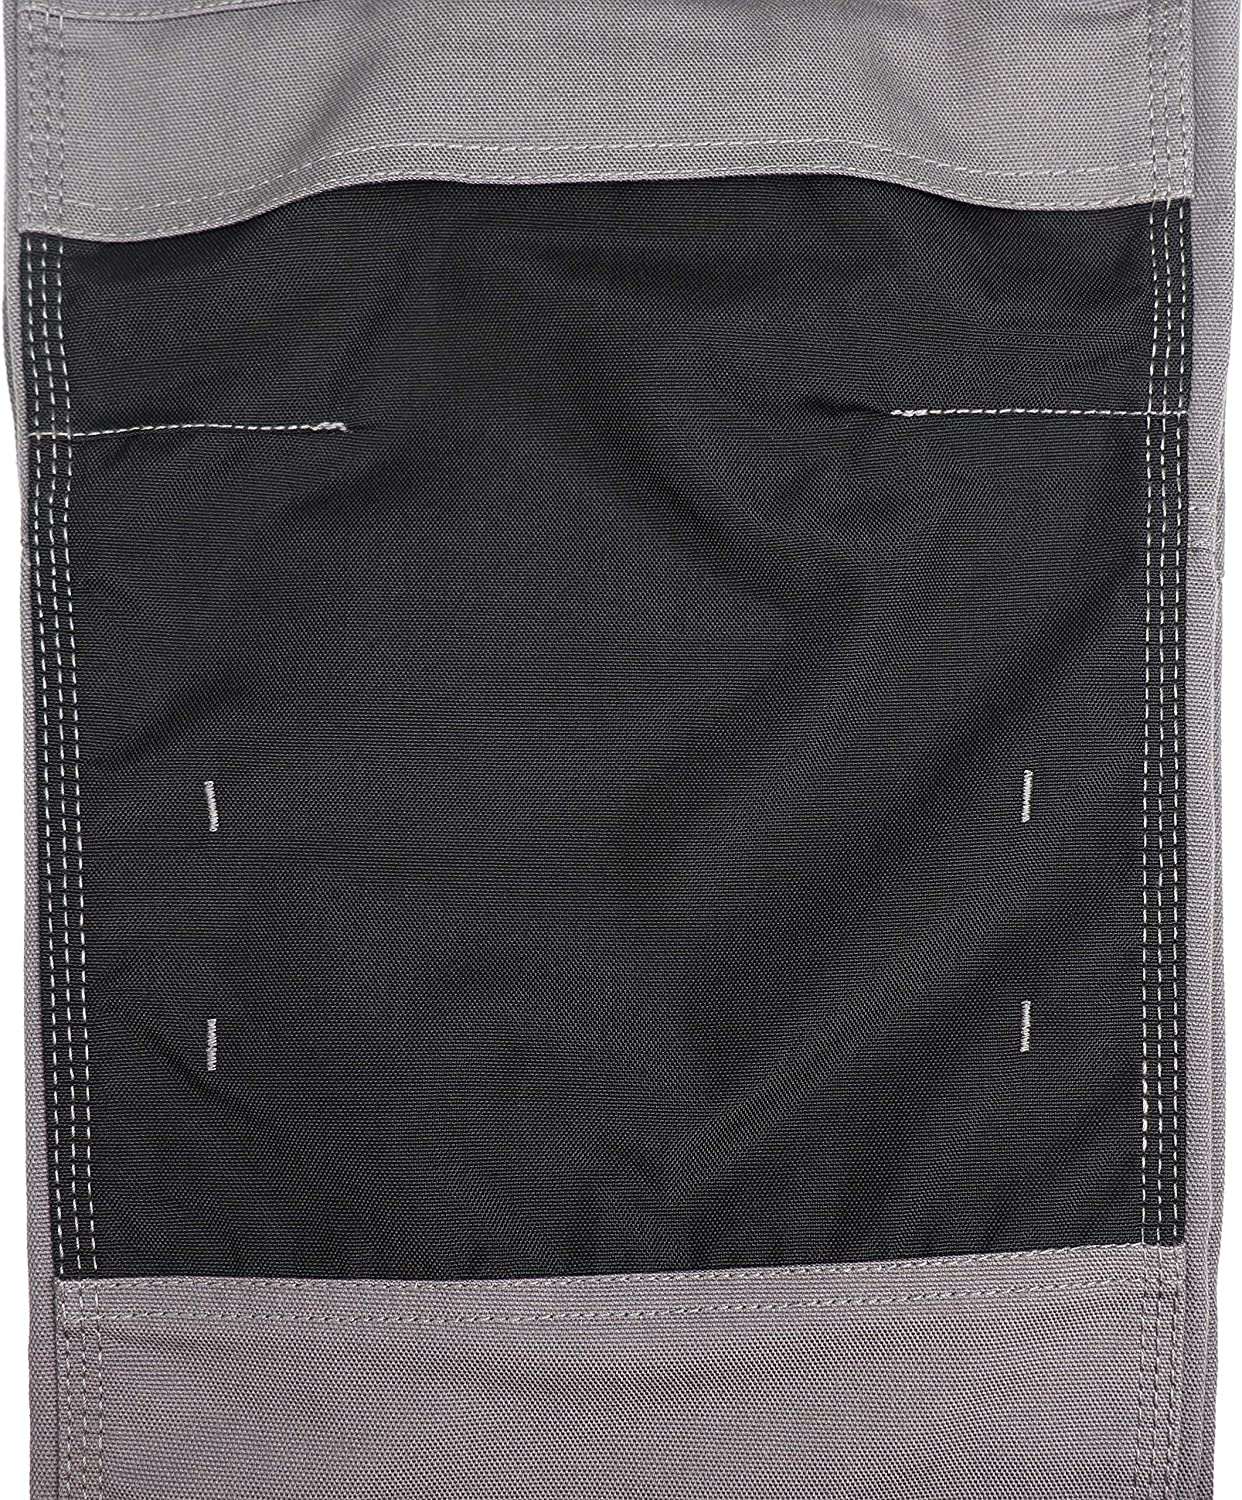 Pantalones Hombre Lee Cooper Cargo Trausers